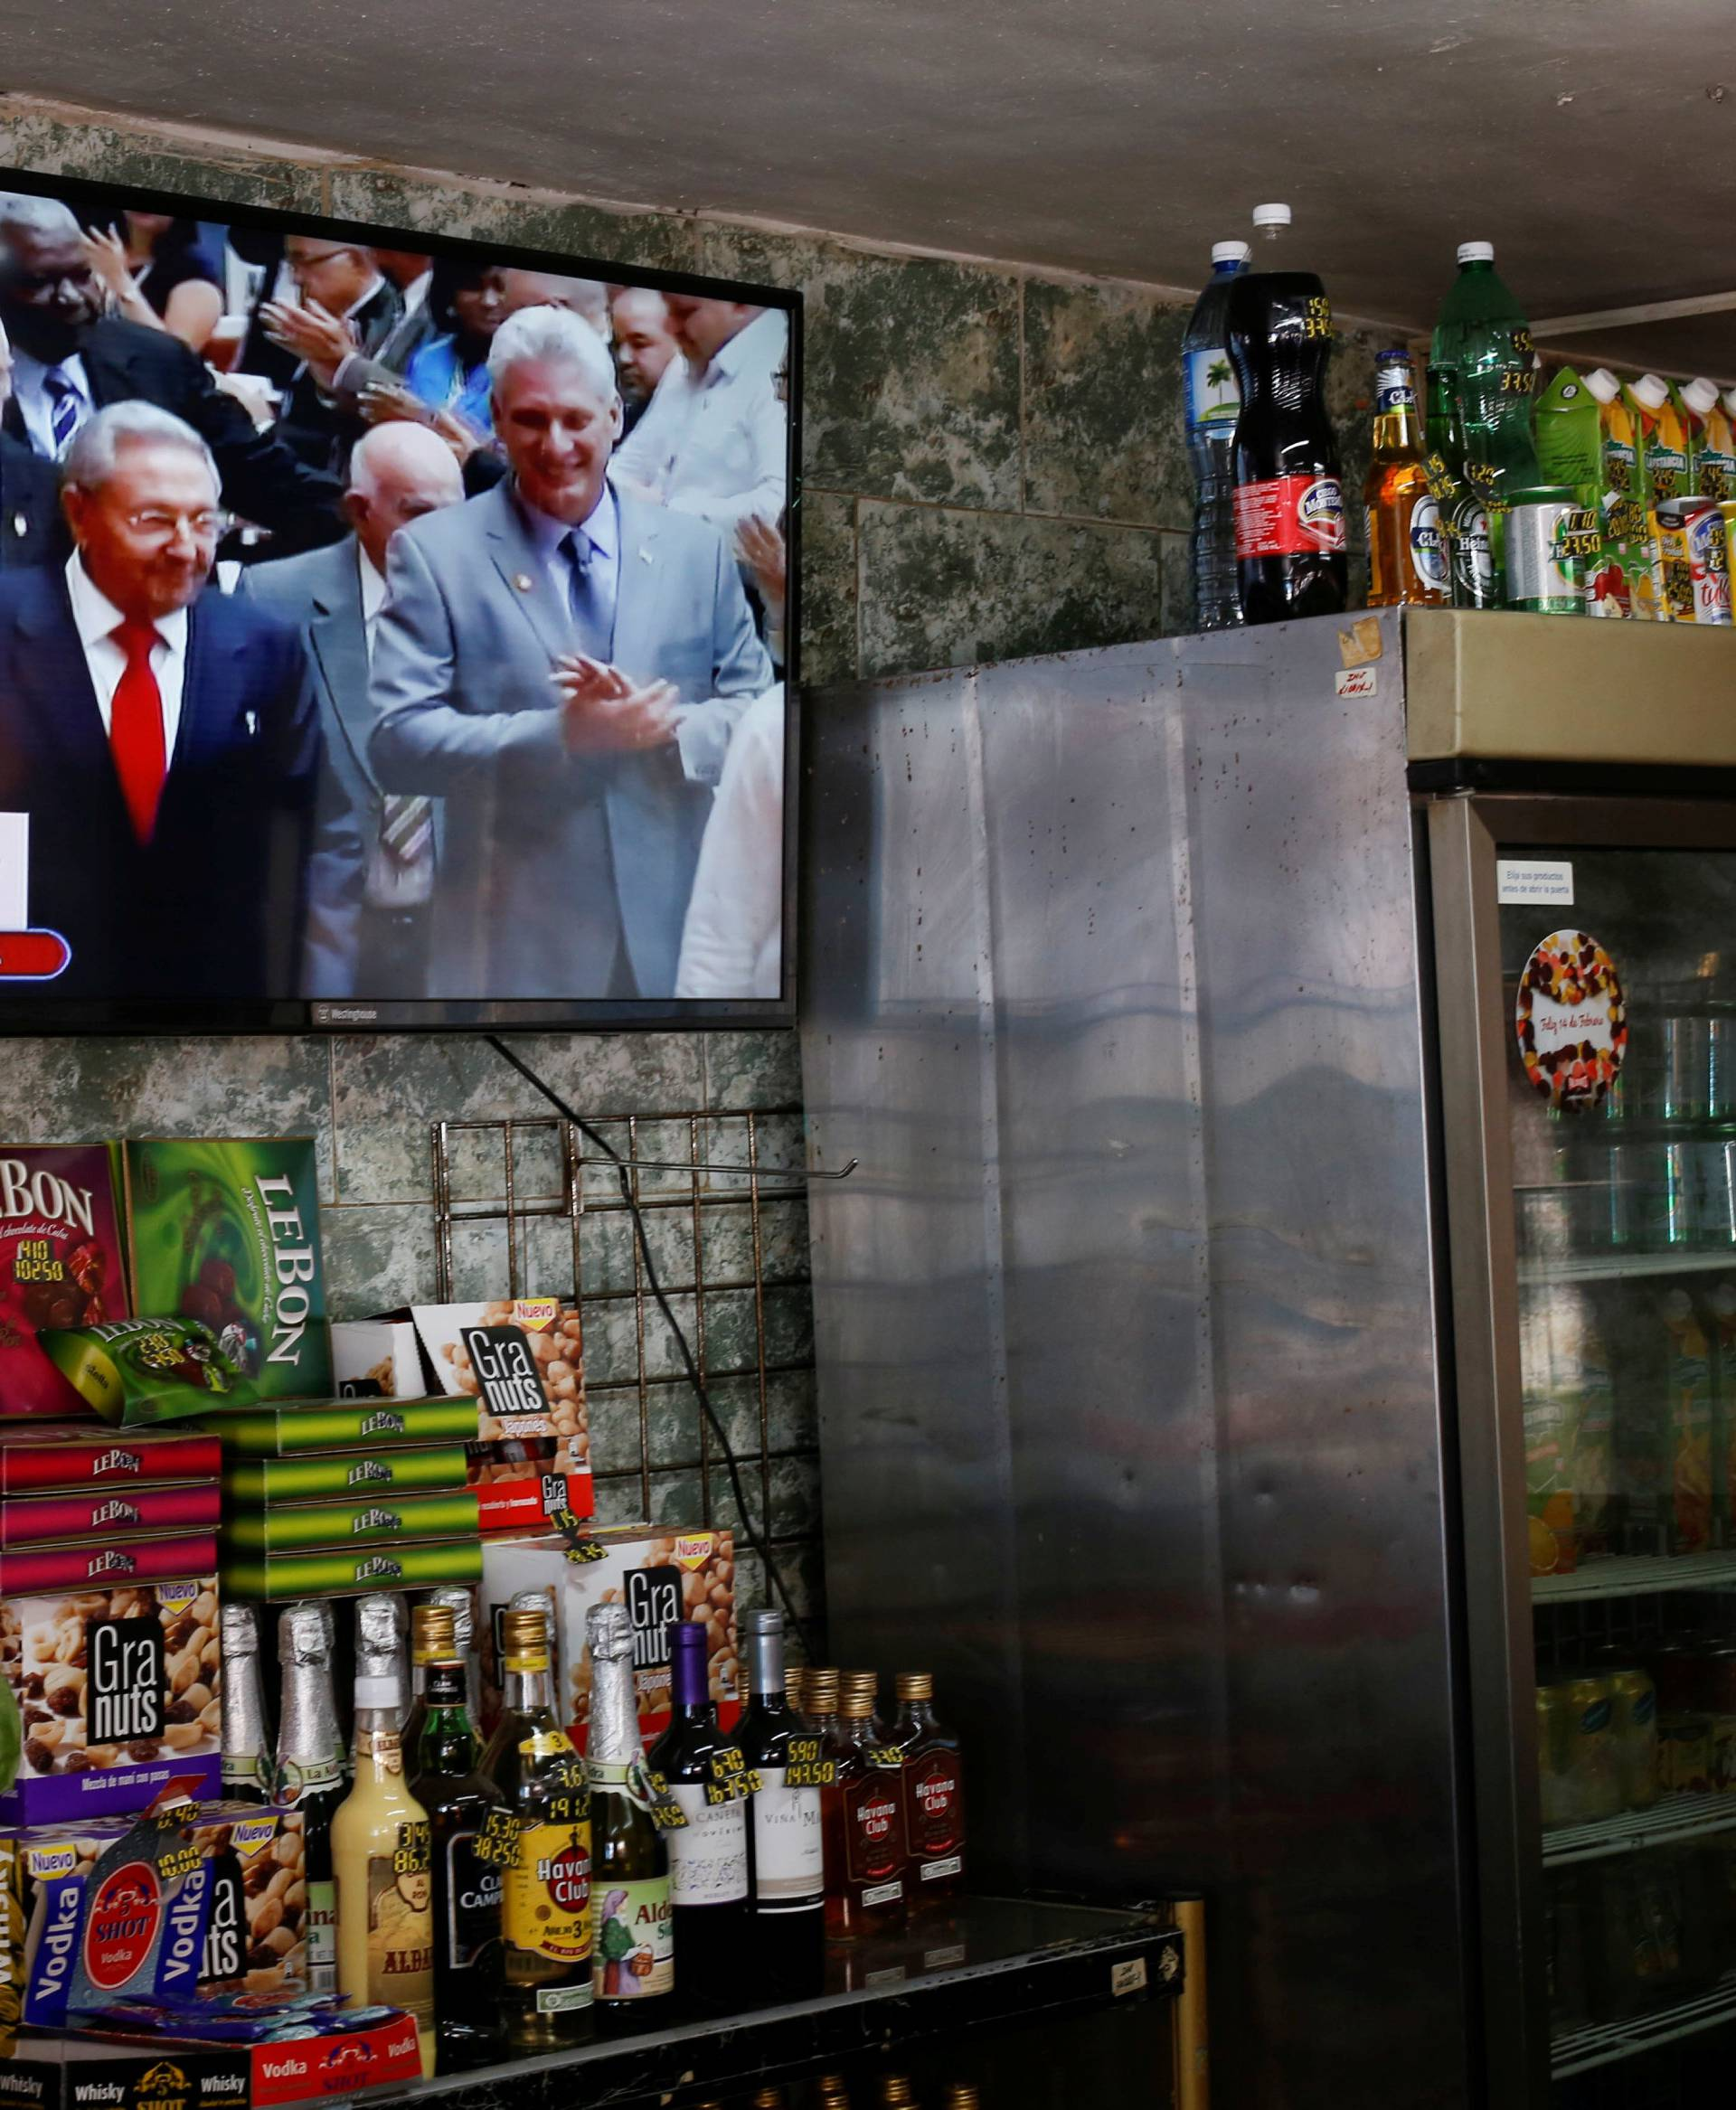 Cuba's President Raul Castro and  First Vice-President Miguel Diaz-Canel are seen on a TV screen inside a restaurant as they arrive for a session of the National Assembly in Havana